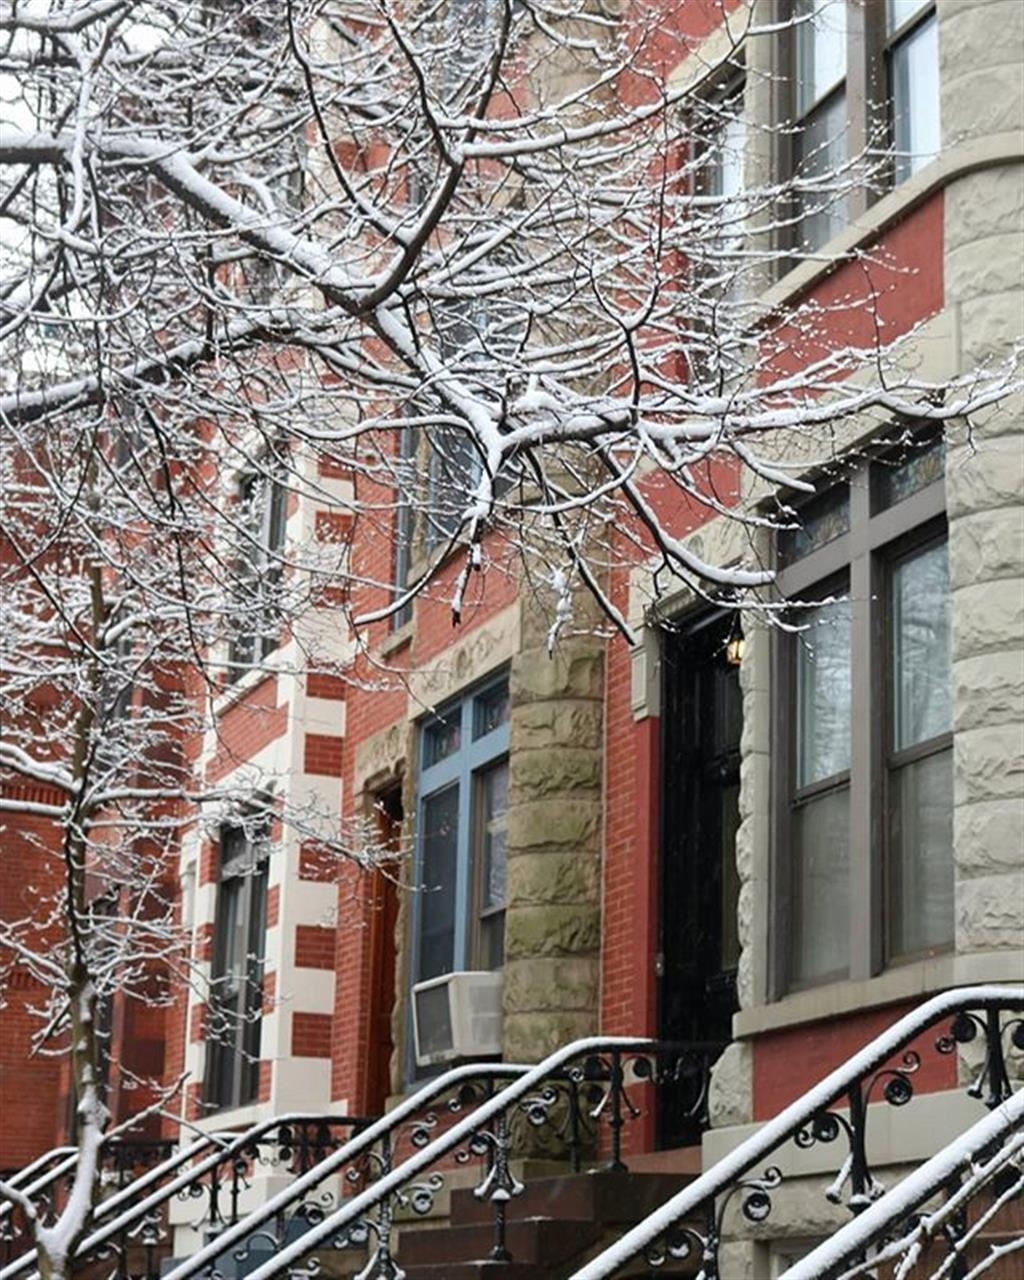 Snow came this morning.  #parkslopebrooklyn #parkslope #picballot #townhouses #colorful #Brooklynhouses #trees #tree_magic #stairs #staircases #windows #snowÔØä #naturelover #white #Exploreyourhood #leadingrelocal #beautiful #beautifulday